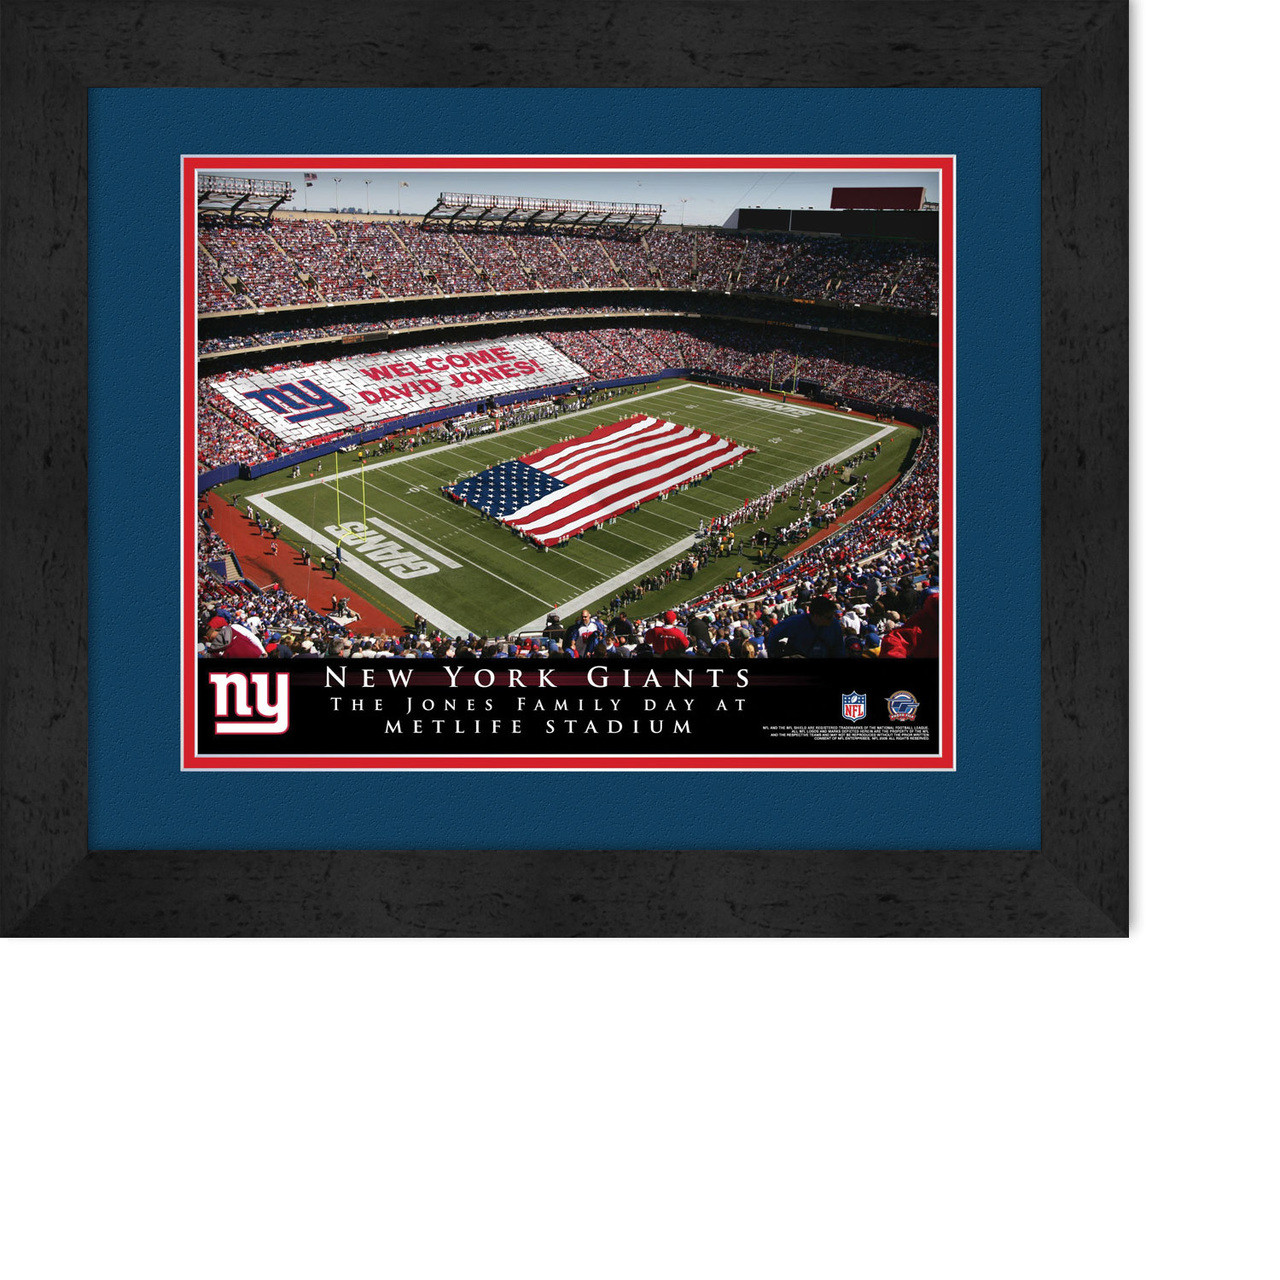 68af1a41273 NY Giants Stadium Sign Your Day at Metlife Stadium. Image 1